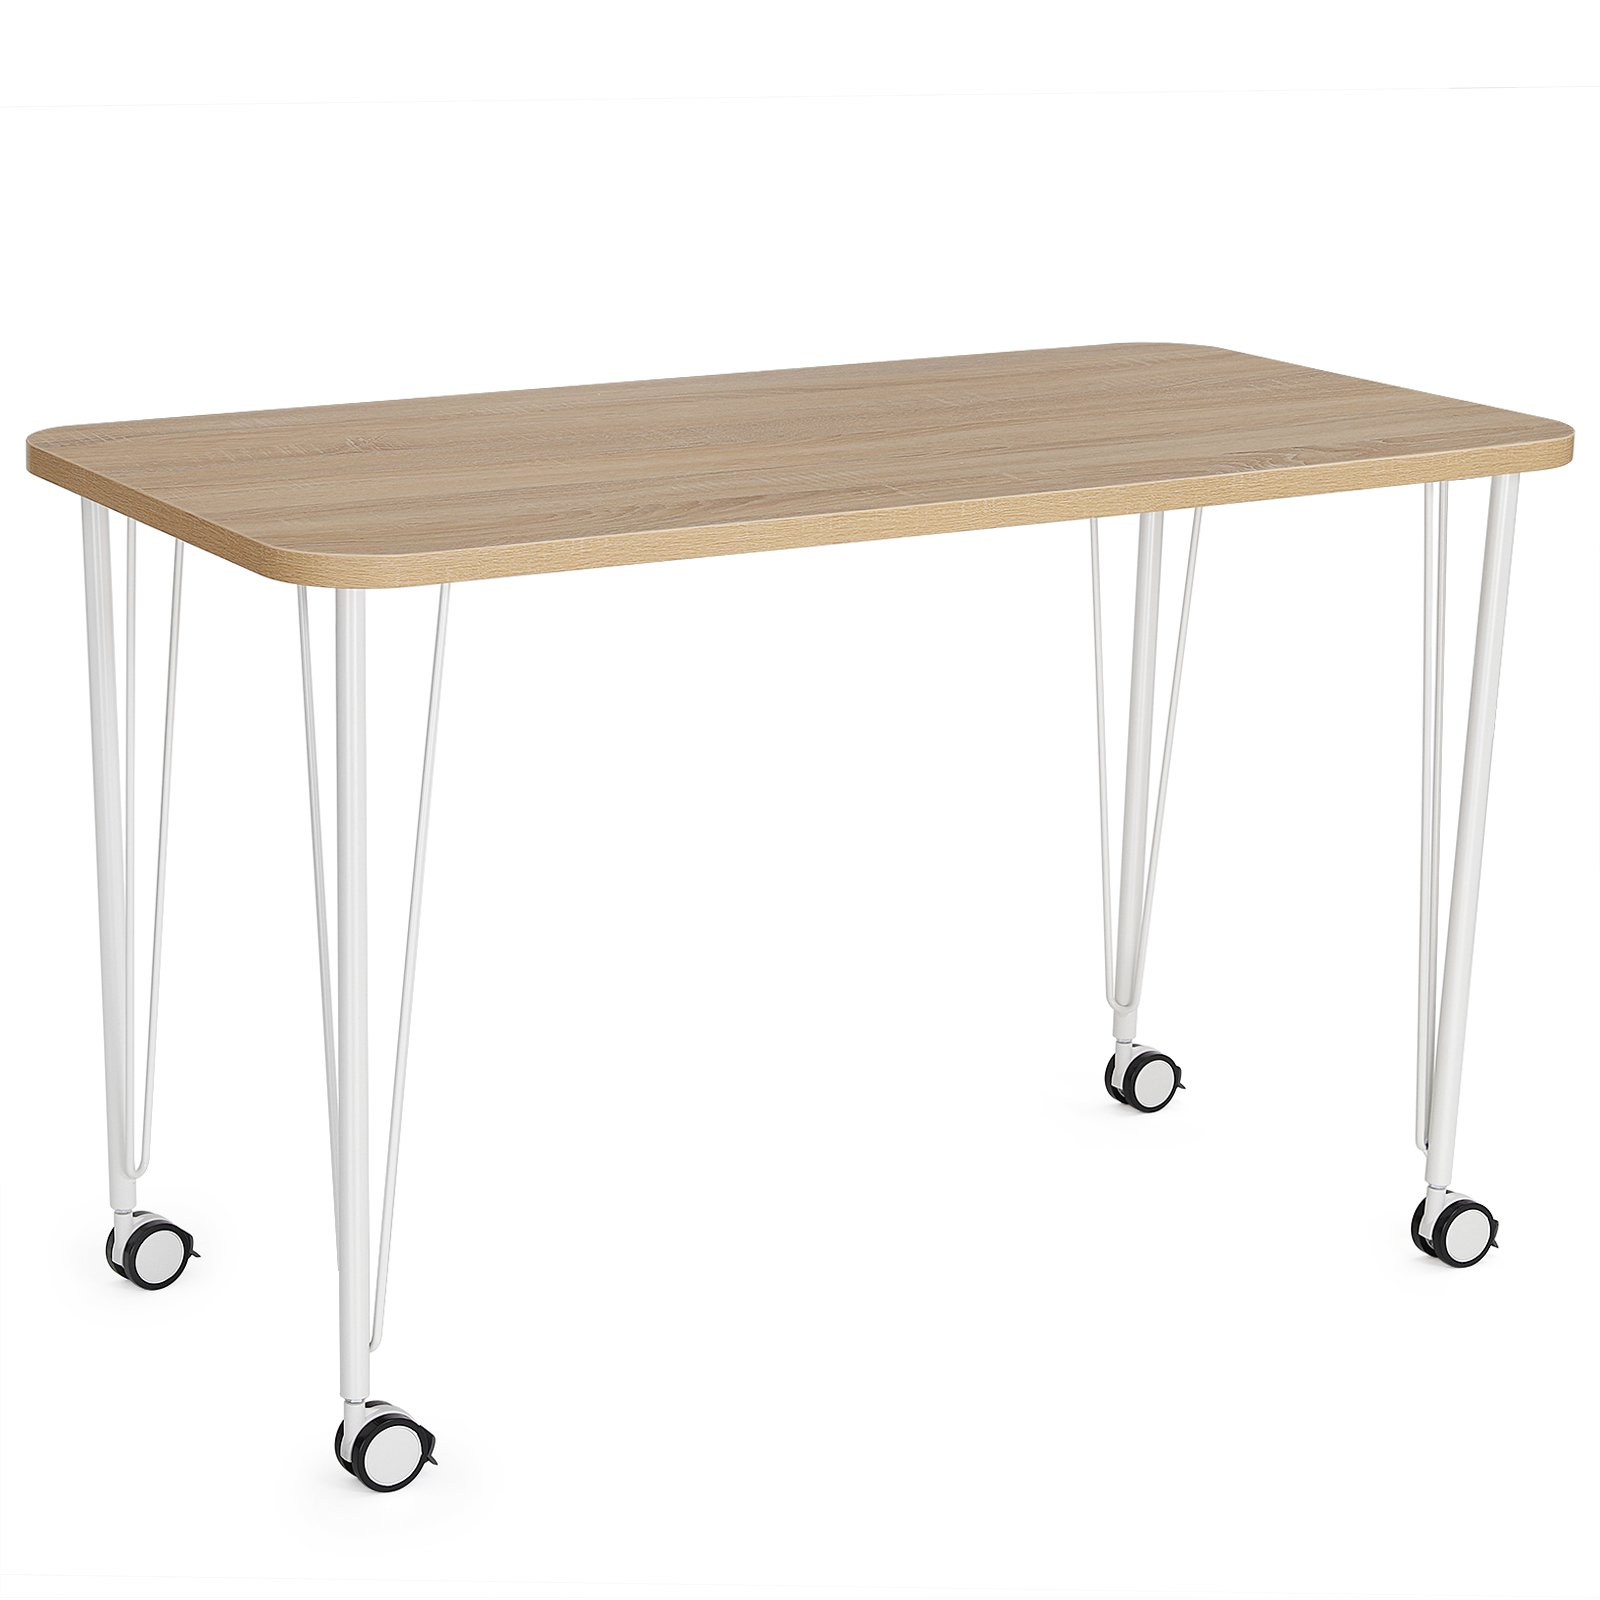 SONGMICS Computer Desk, Writing Table, Console Table, Mobile Dining Table, Easy Assmblely, for Home and Office, Walnut, ULWD15WN